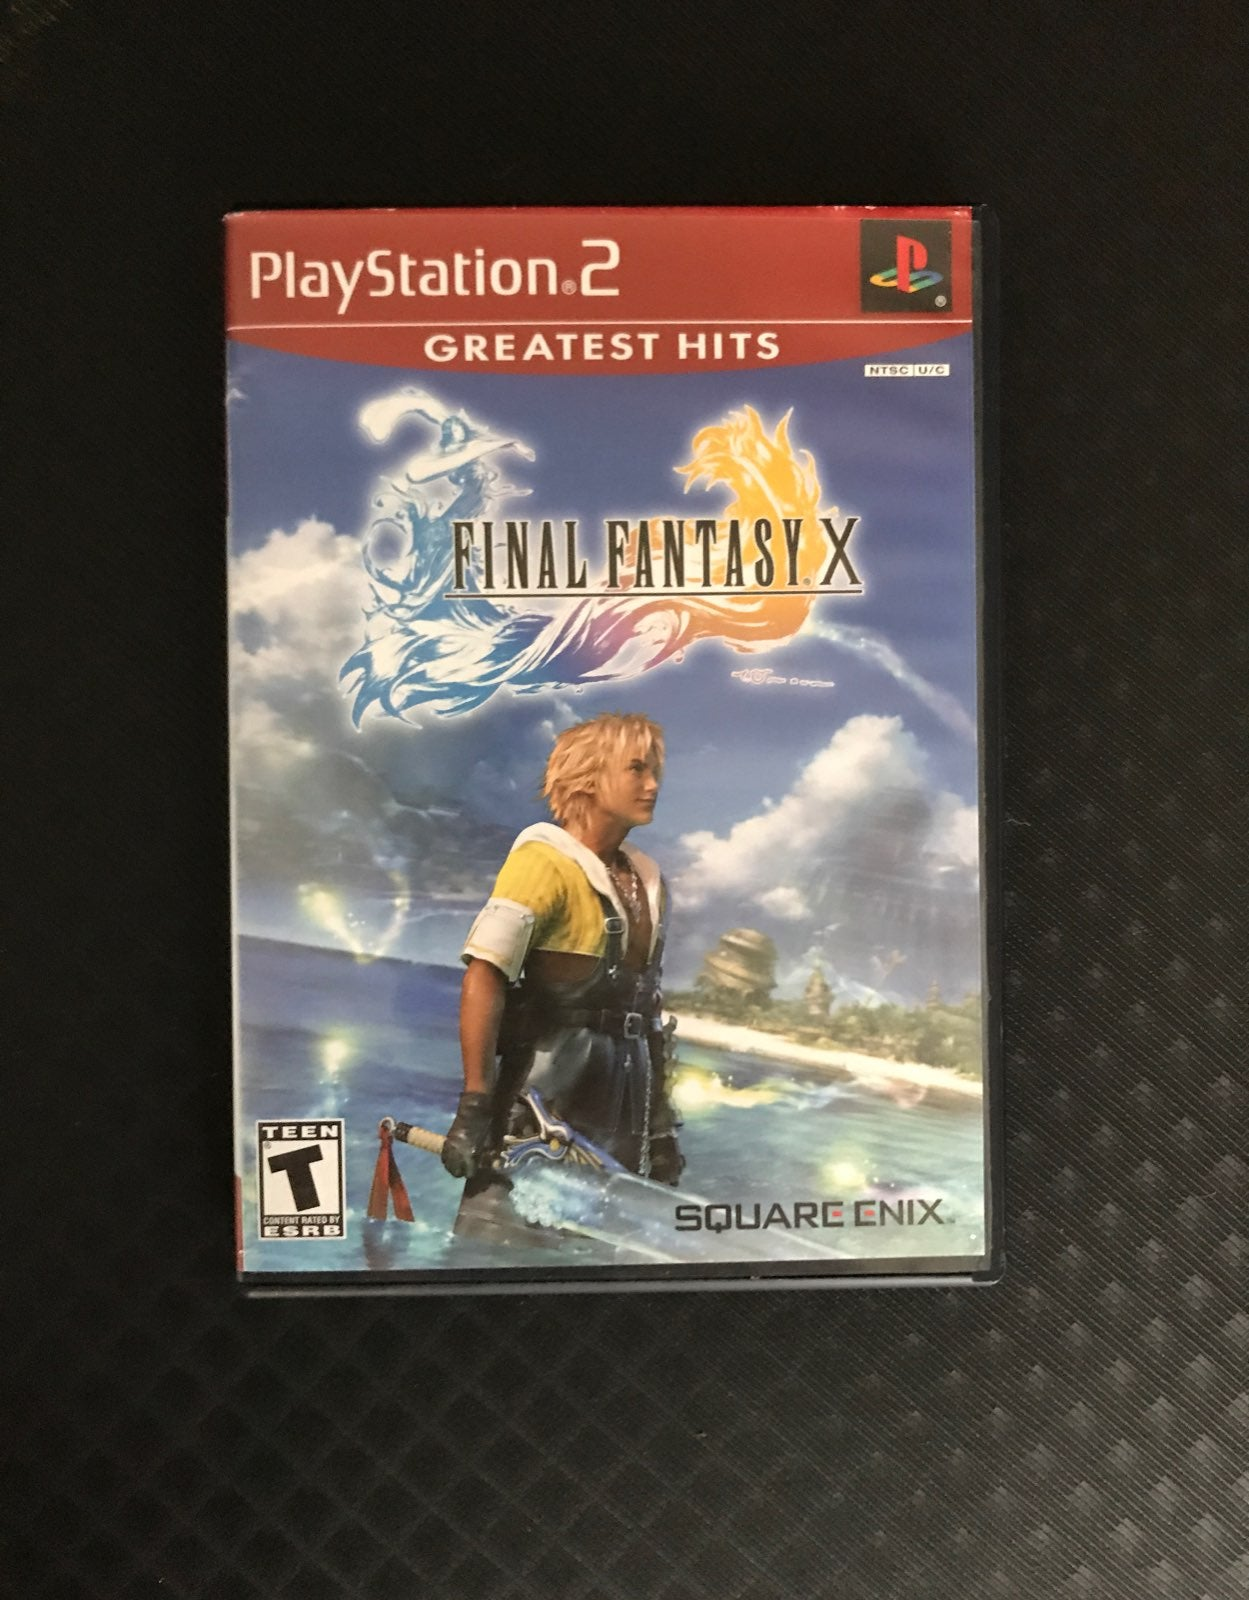 Final Fantasy X (10) PS2 Game